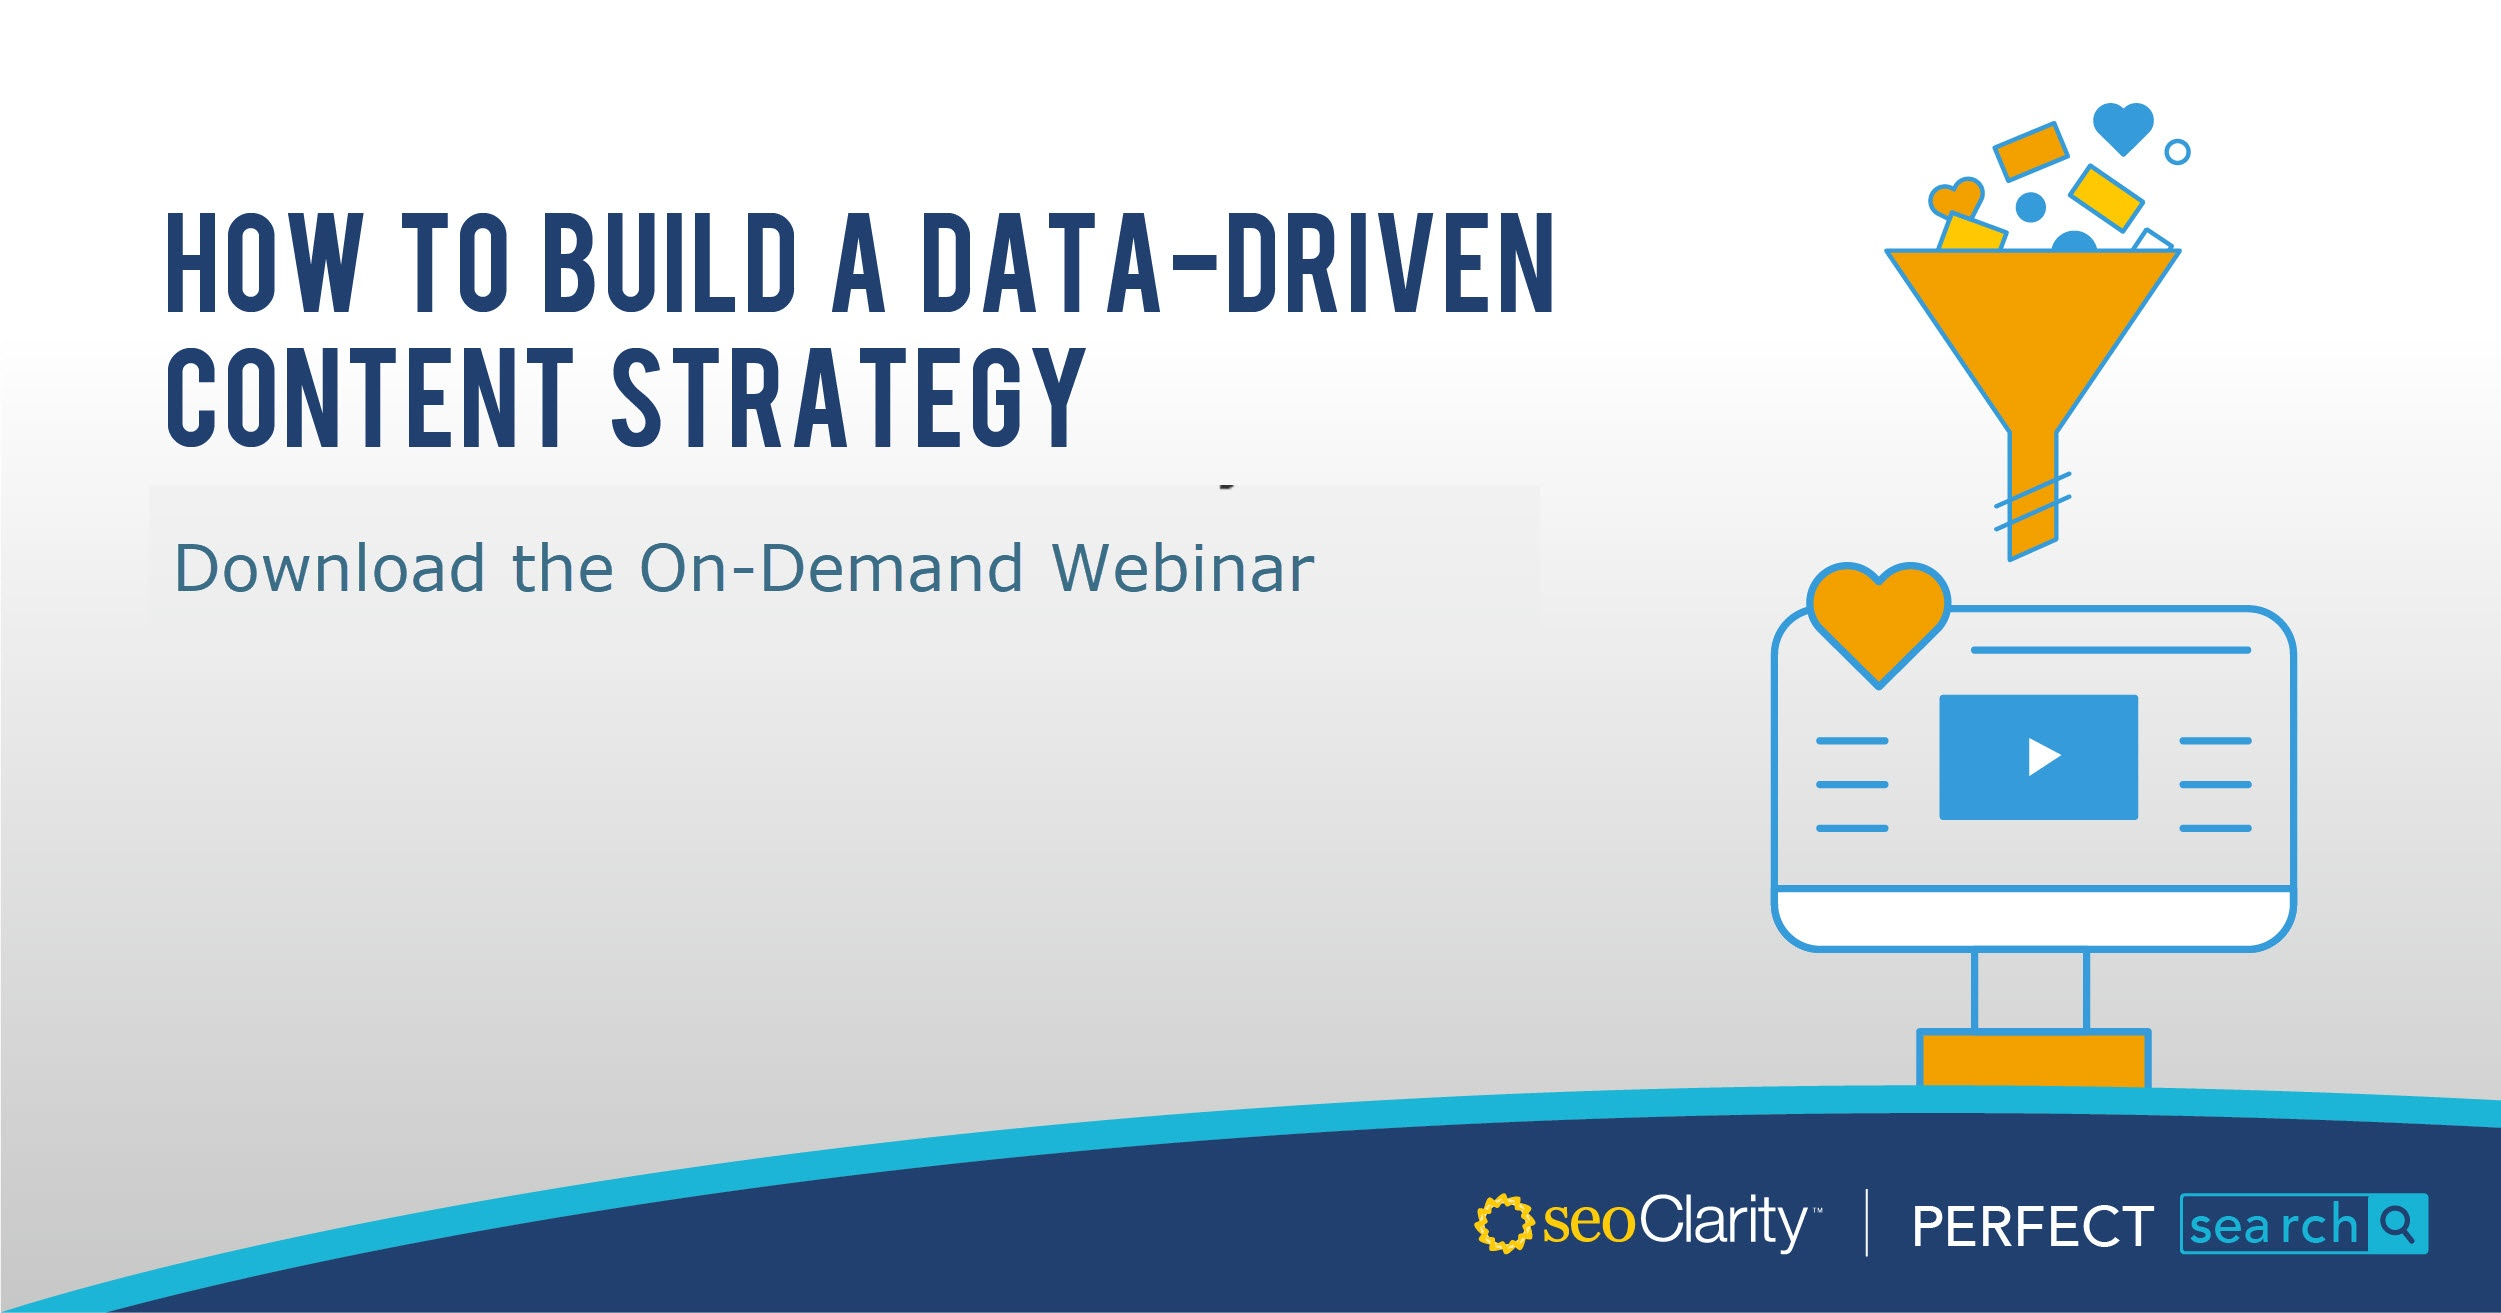 Webinar - How to Build a Data-Driven Content Strategy